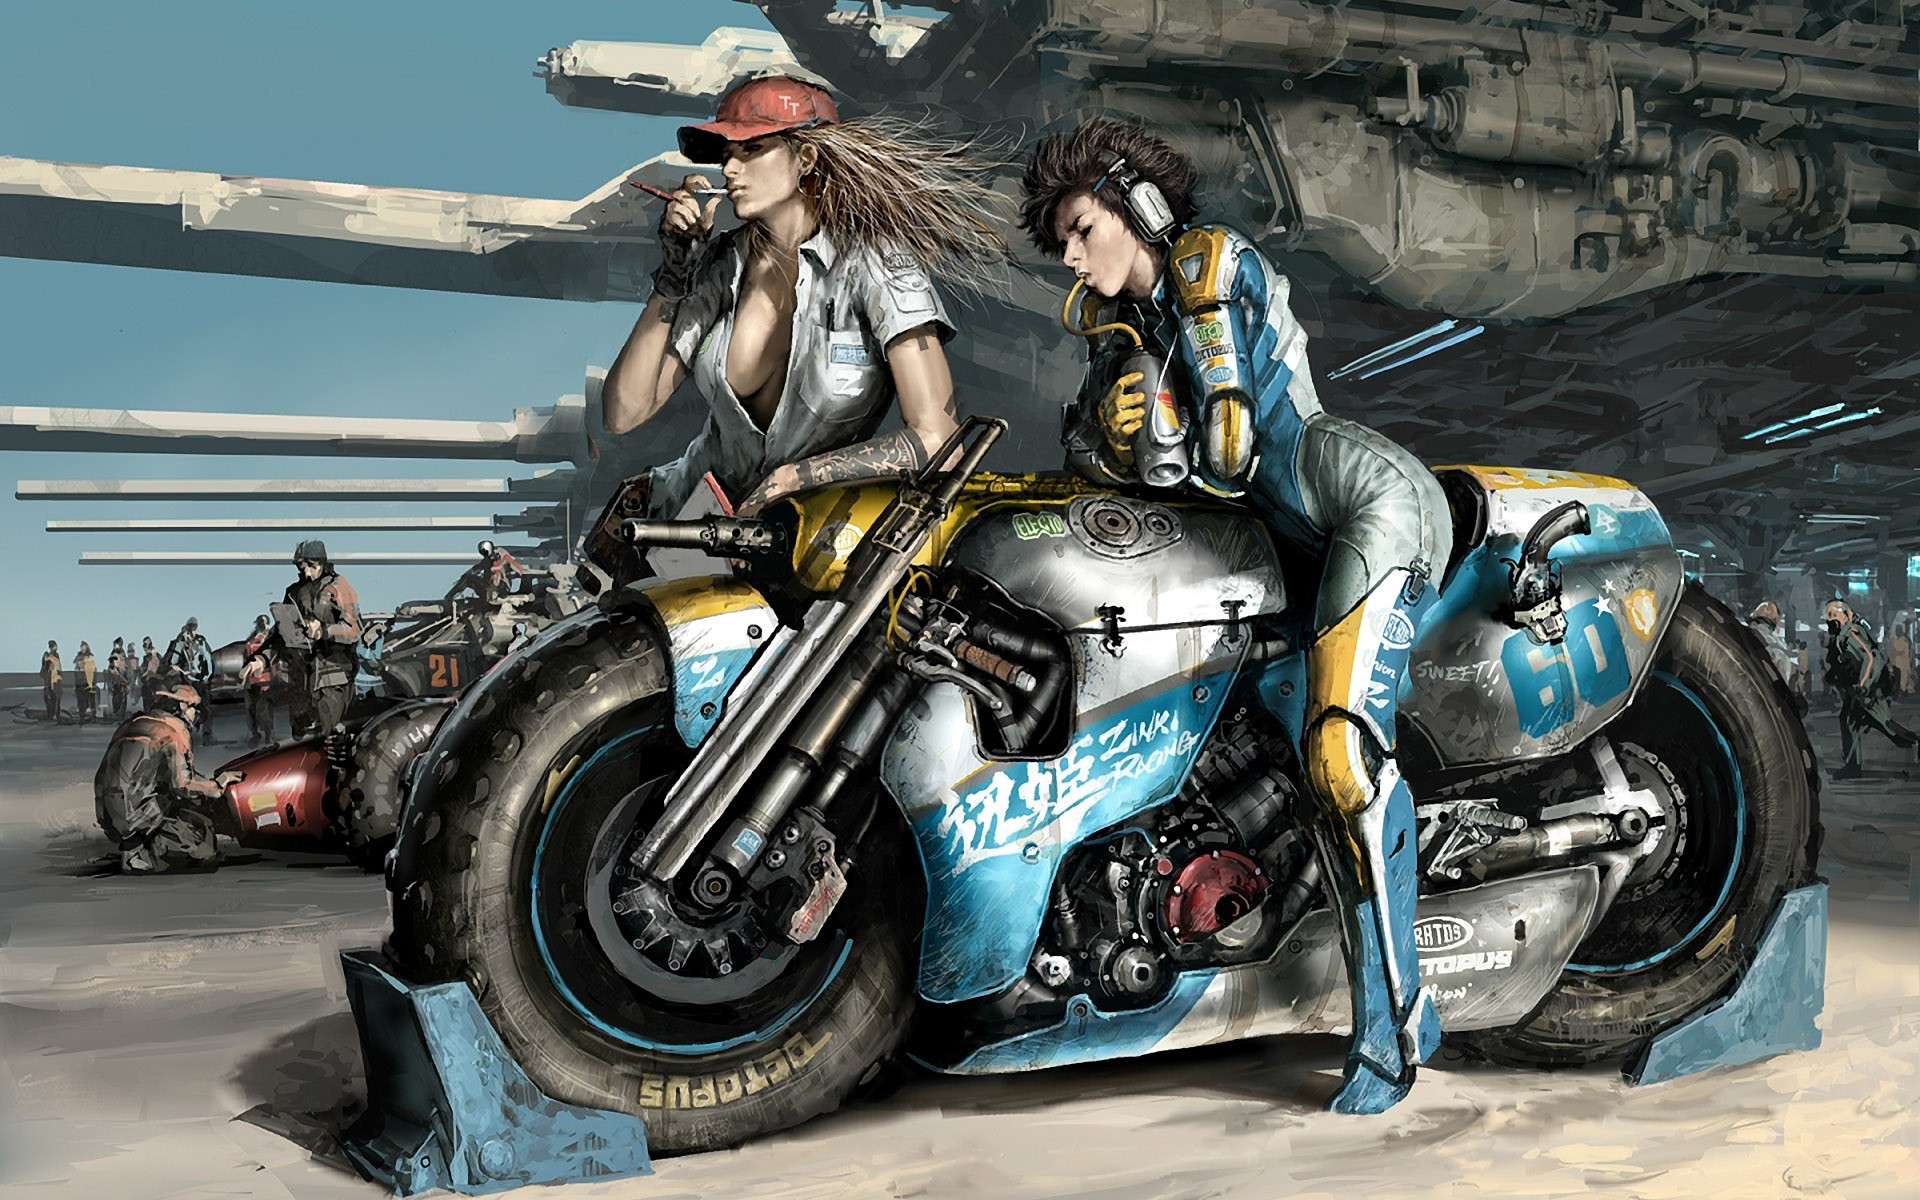 Wipeout Hd Wallpaper Hd Wallpapers Motorcycles And Girls 70 Images